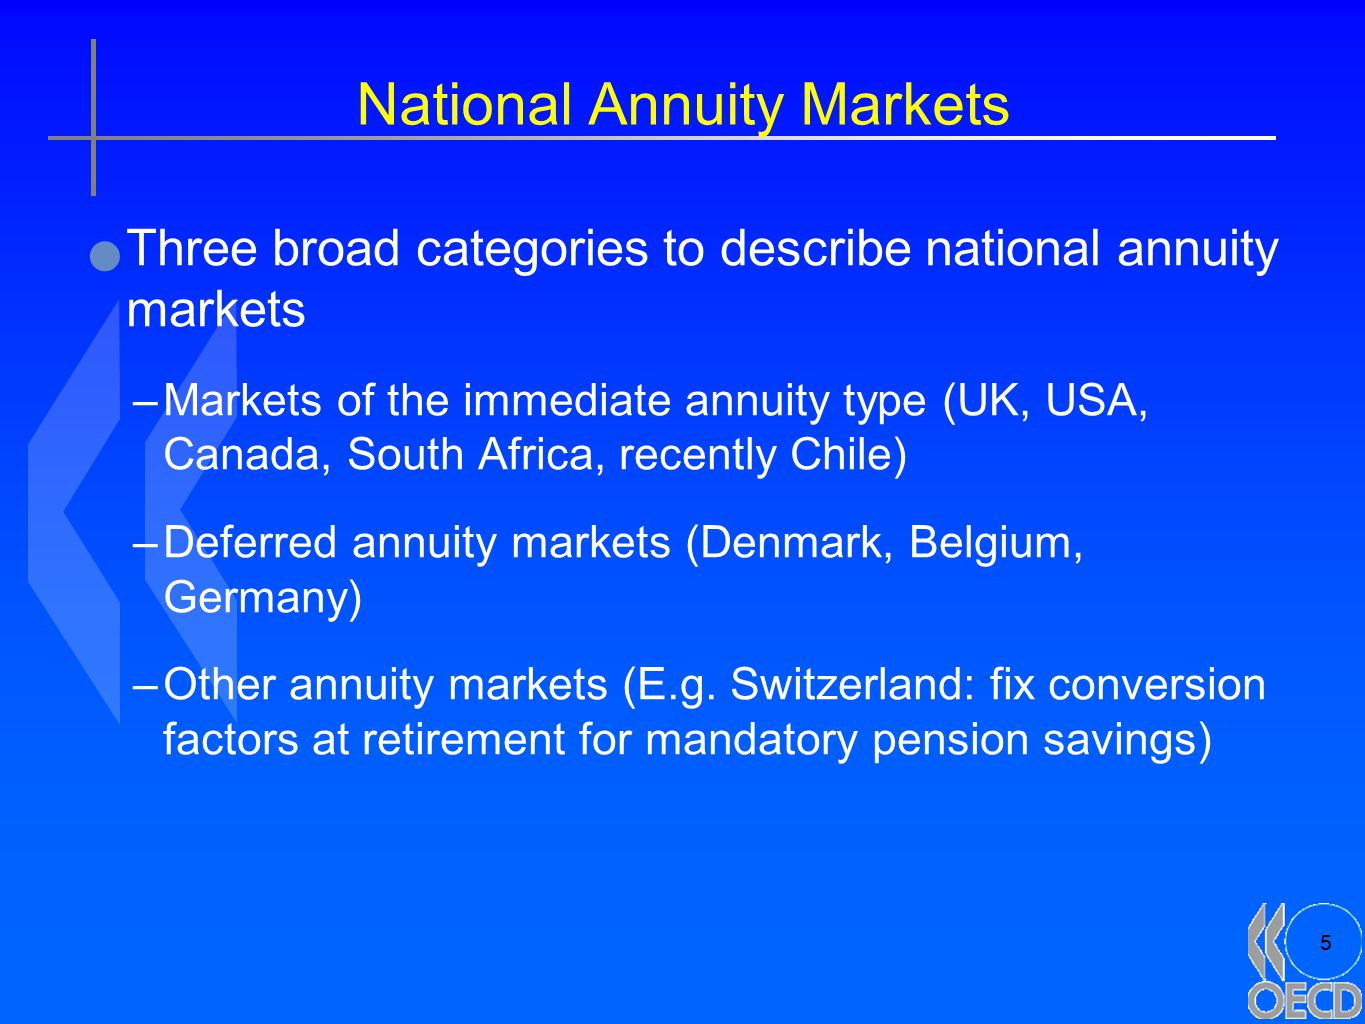 5 National Annuity Markets Three broad categories to describe national annuity markets –Markets of the immediate annuity type (UK, USA, Canada, South Africa, recently Chile) –Deferred annuity markets (Denmark, Belgium, Germany) –Other annuity markets (E.g.